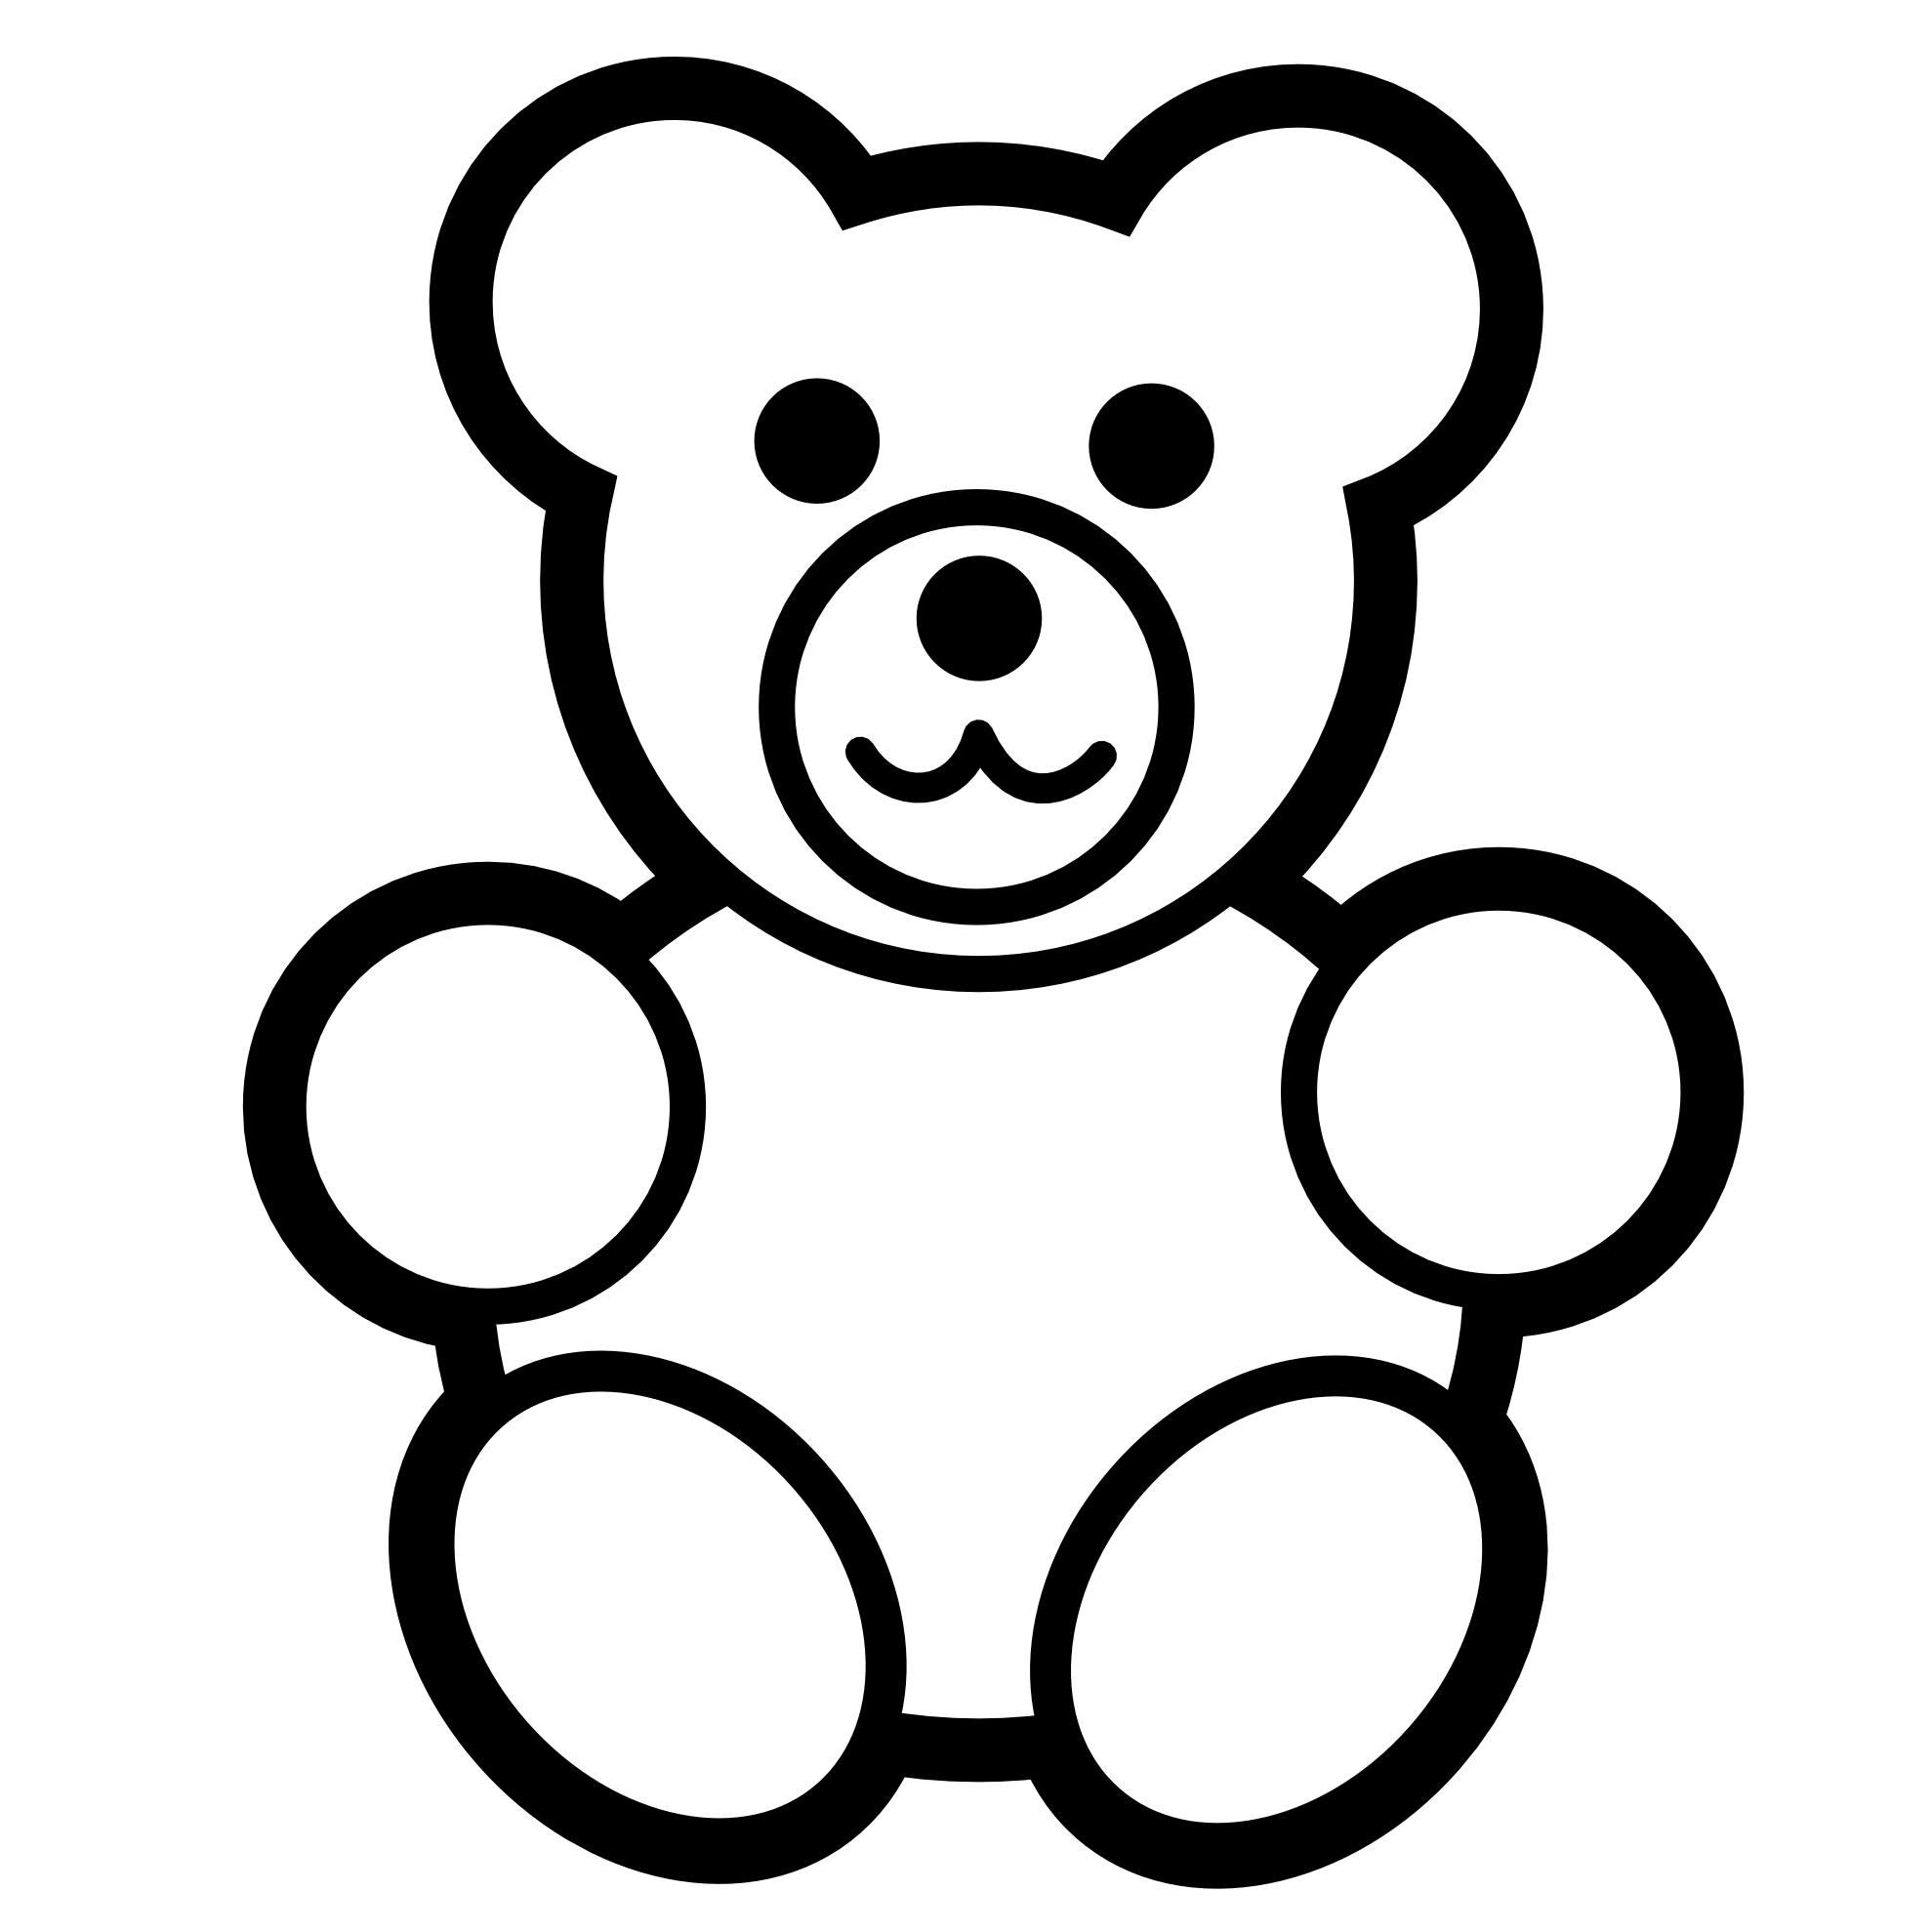 Free Gummy Bear Coloring Pages Download Free Clip Art Free Clip